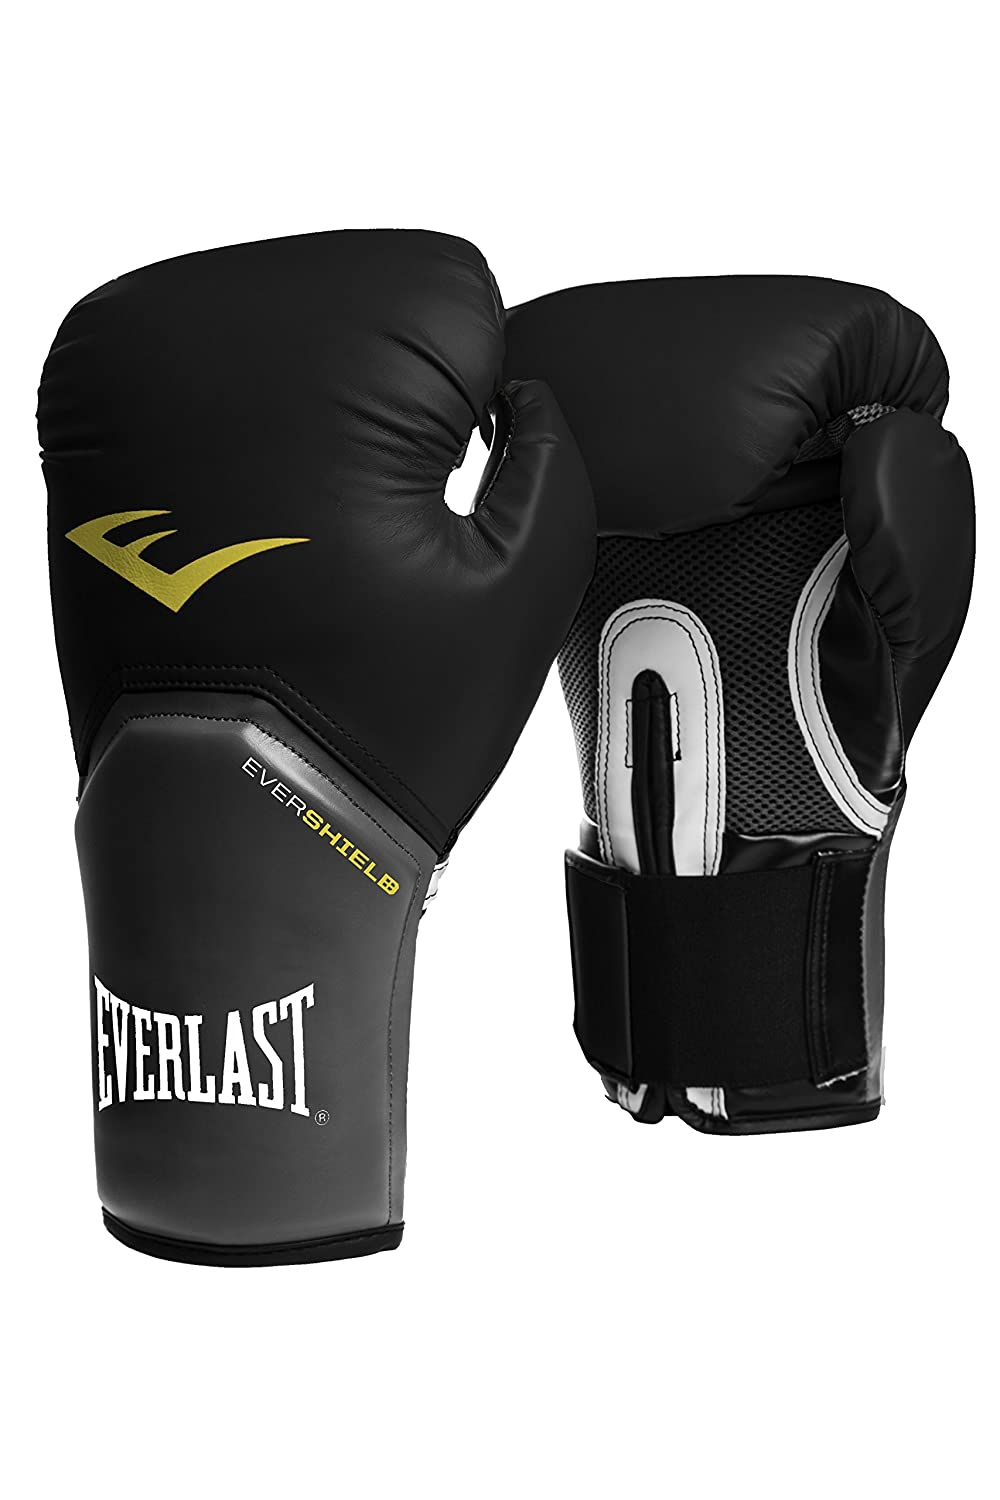 Everlast BK Guante de boxeo elite color negro